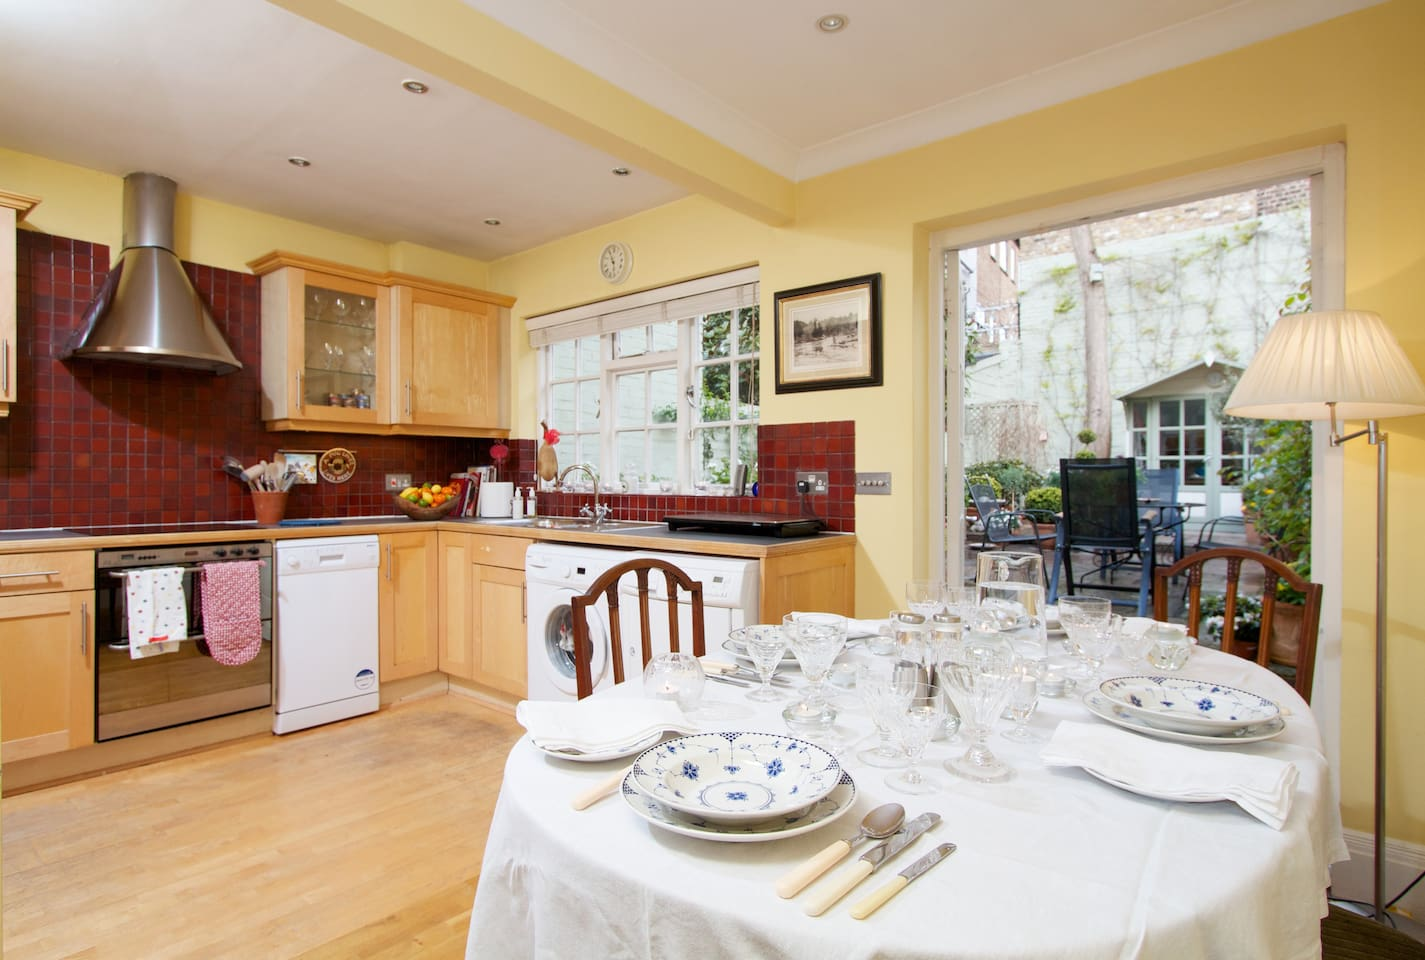 The dining area and kitchen overlooking the garden